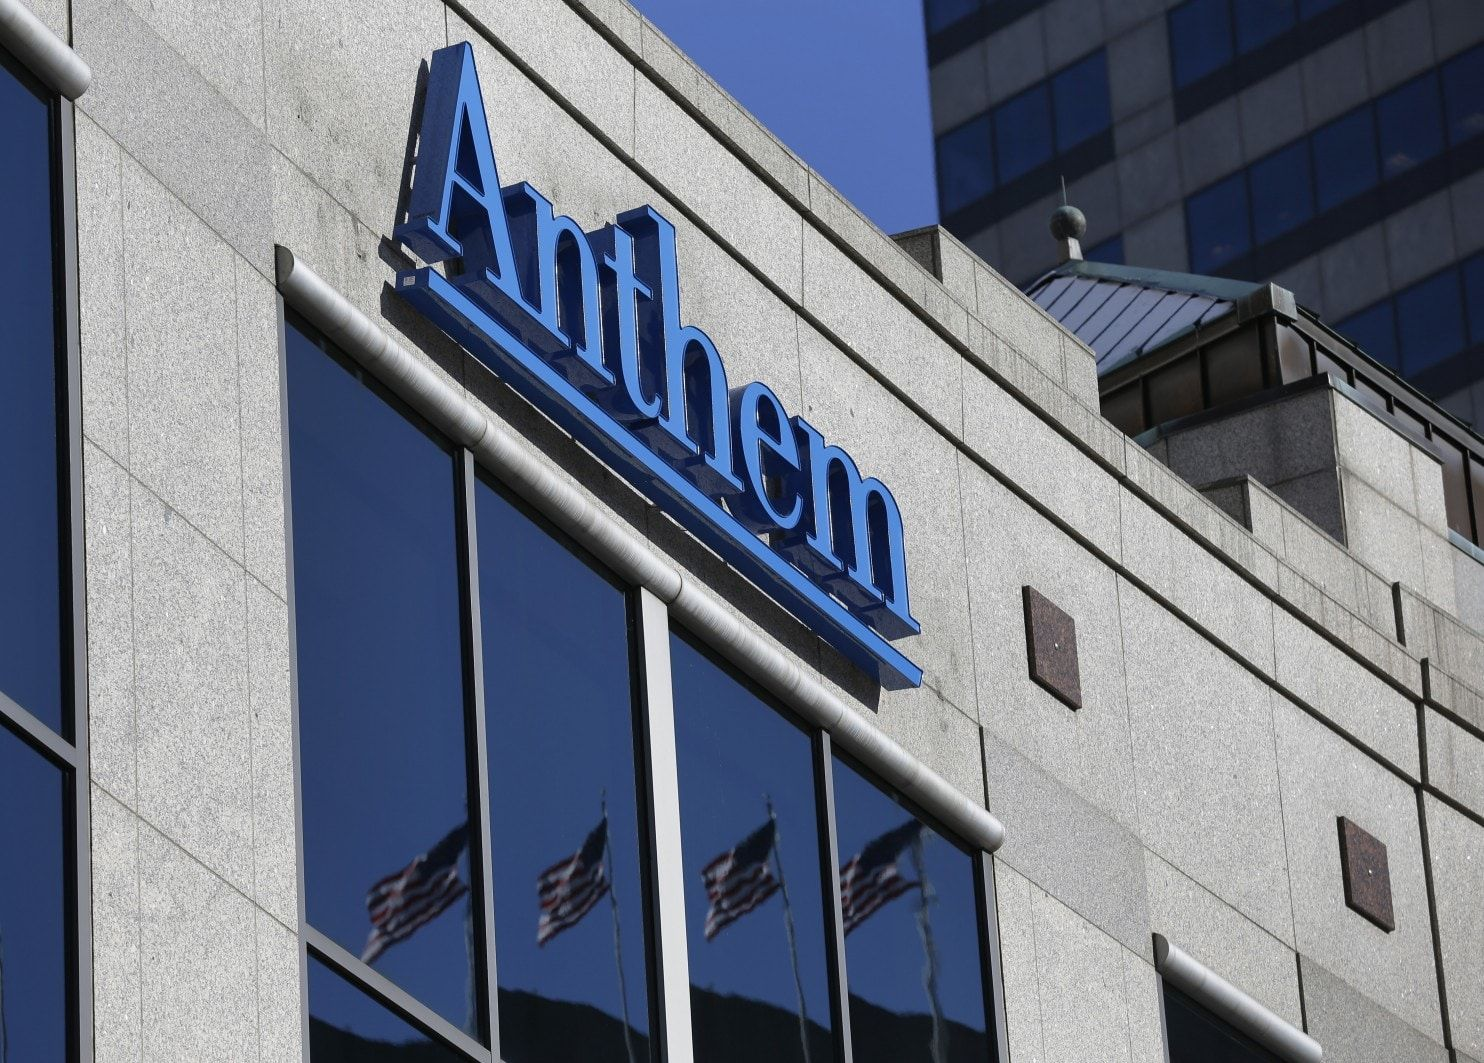 Anthem to leave Virginia's Obamacare marketplace next year